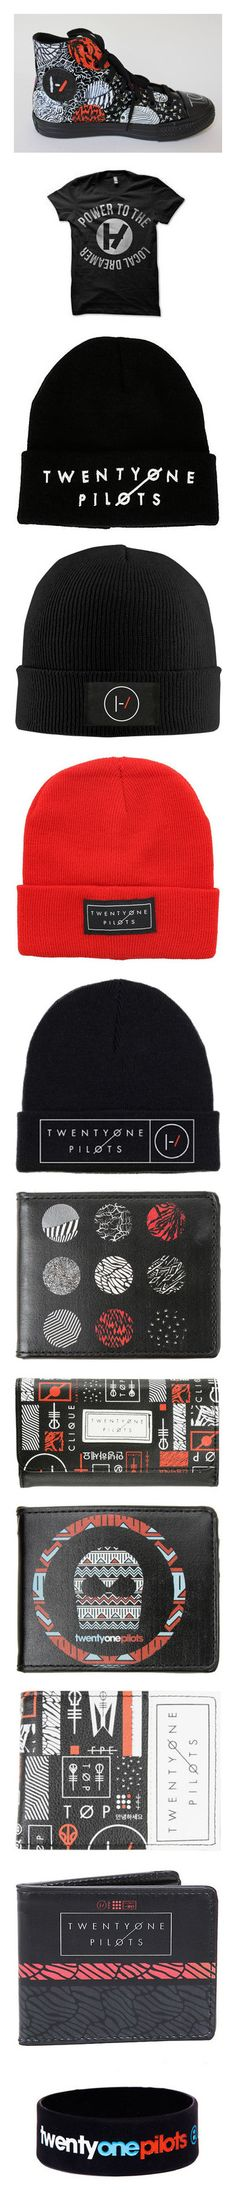 """Twenty One Pilots"" by topmcrpatdfob ❤ liked on Polyvore featuring shoes, sneakers, 1920s shoes, 1920s inspired shoes, roaring 20s shoes, 20s shoes, 1920s style shoes, accessories, hats and beanies"